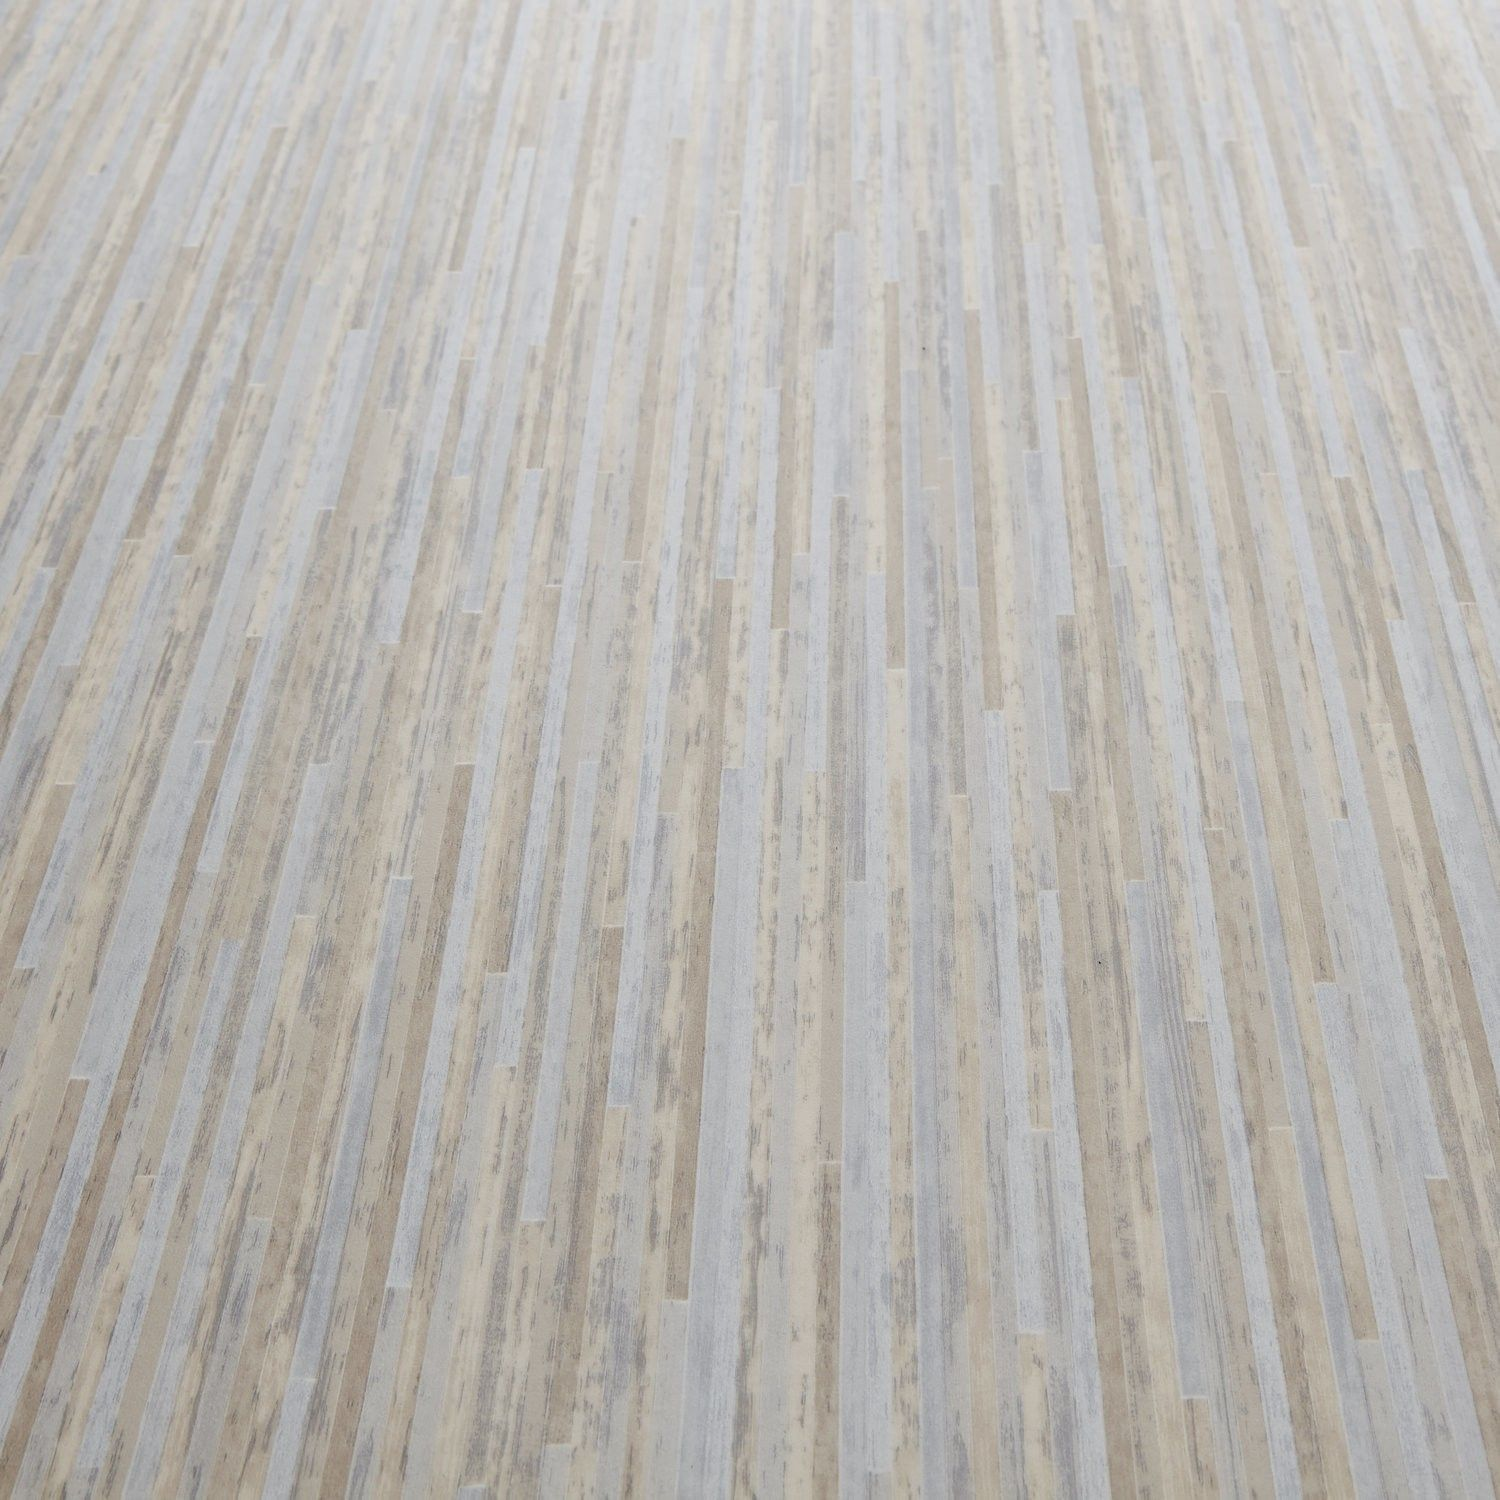 Kitchen Vinyl Flooring Kitchen Vinyl Floor Tile Option 3 Platinum Off White Oak